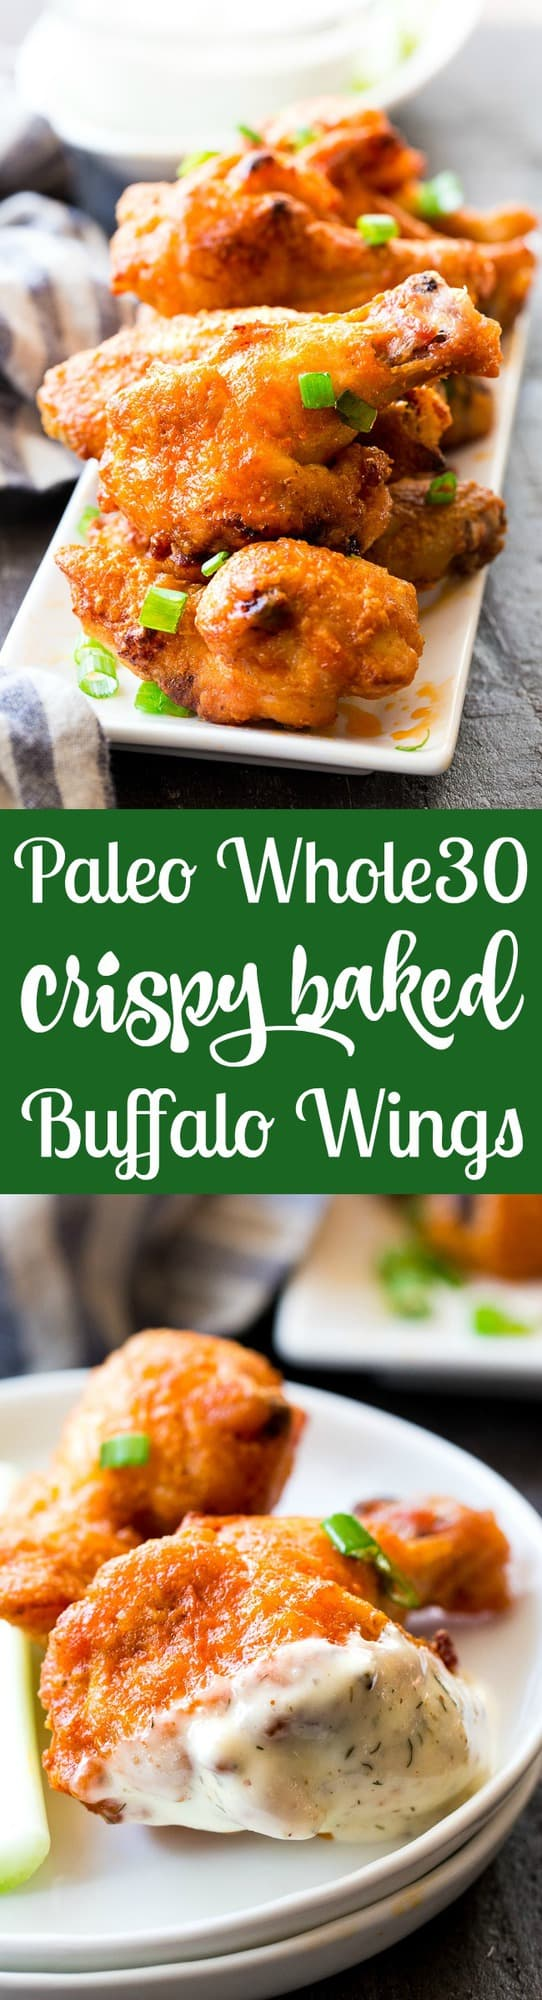 These crispy baked buffalo chicken wings are easy to make, healthy, and ridiculously tasty!   They're  paleo and Whole30 compliant and perfect with Whole30 homemade ranch dip. Perfect as a healthy appetizer, Super Bowl snack or with a salad for dinner! #Whole30 #Paleo